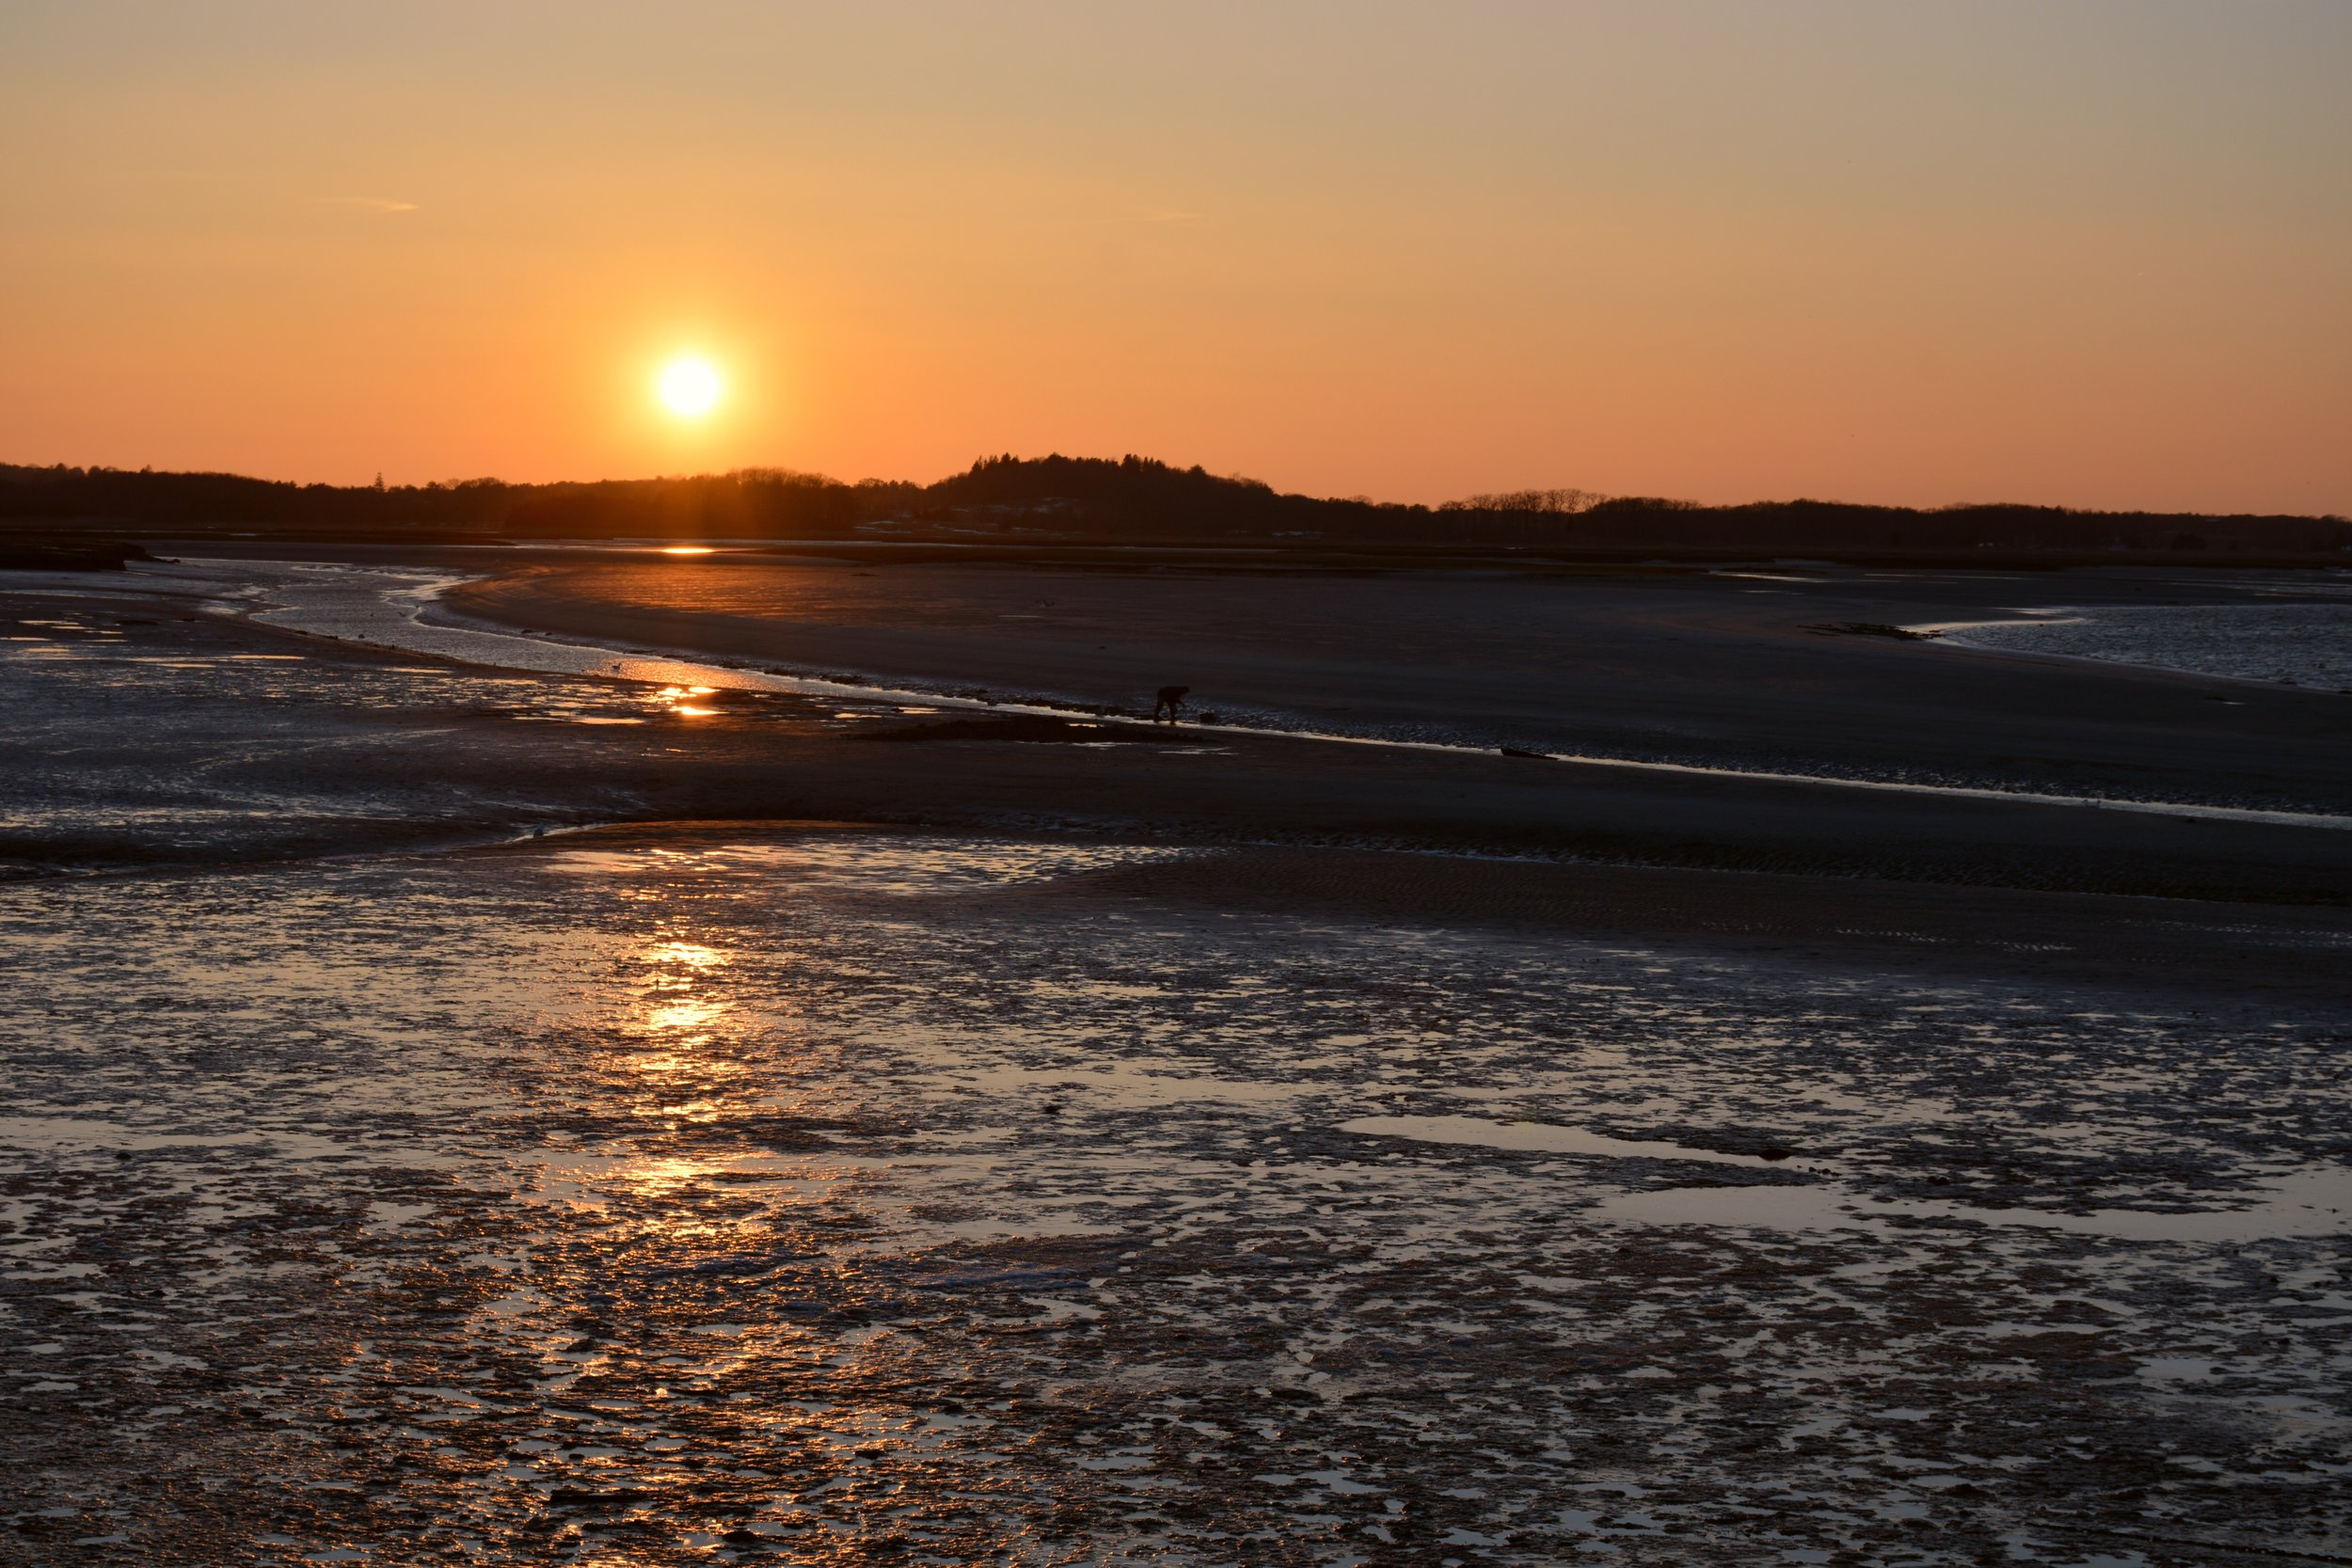 Low tide on the mudflats.